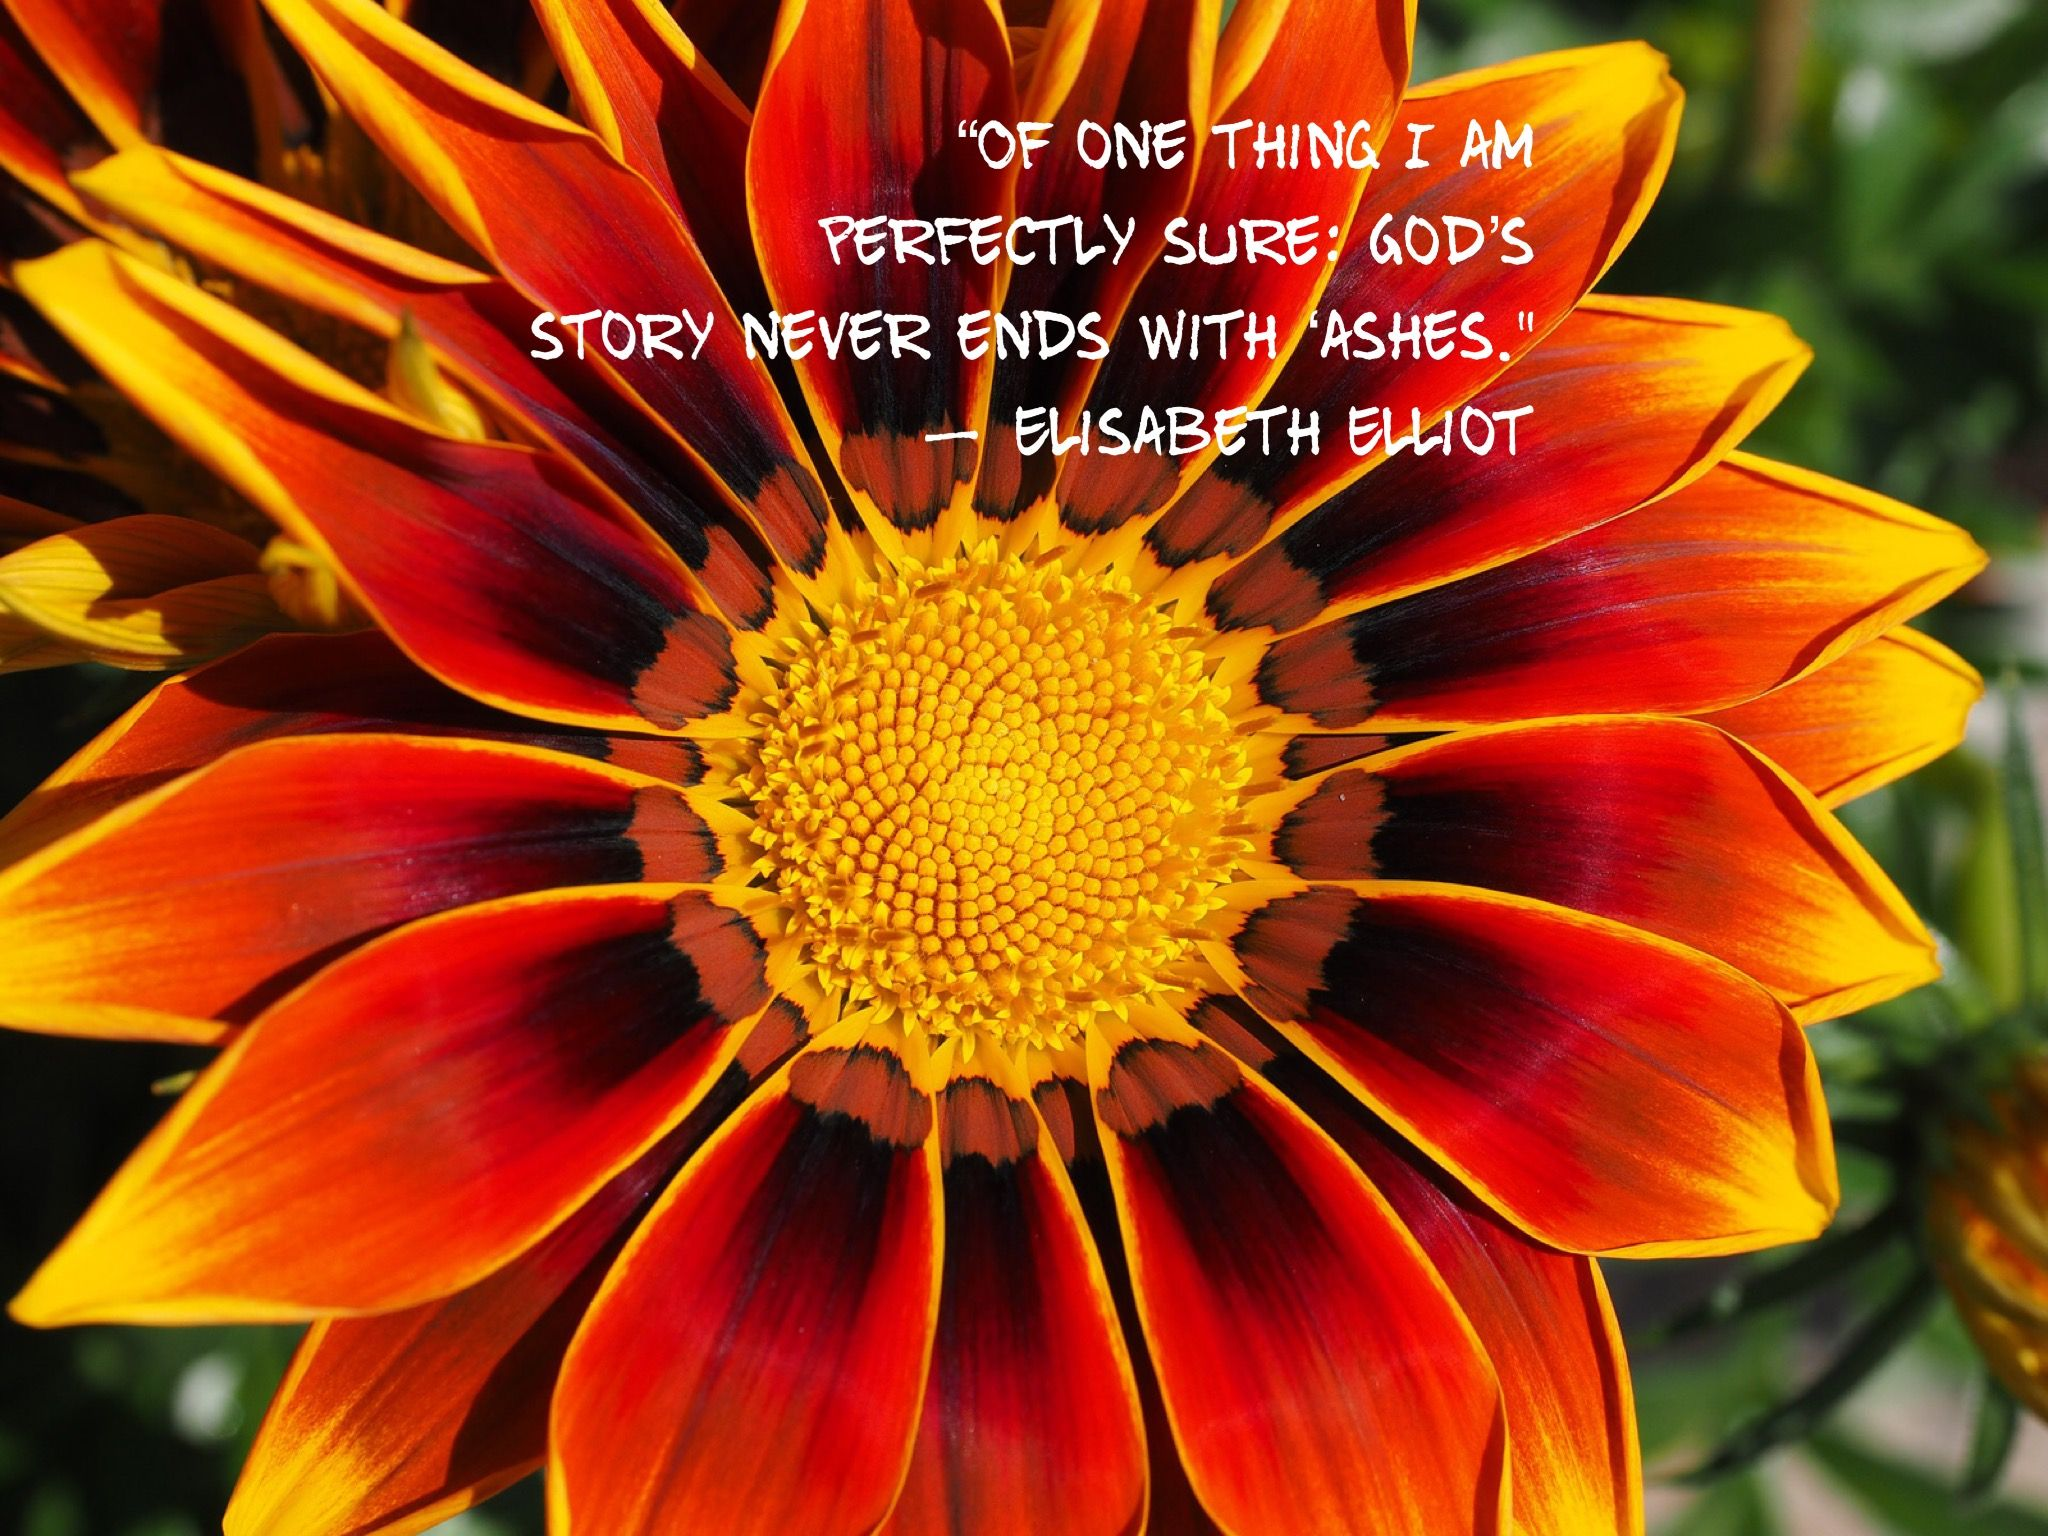 Pin by kelley spence on quotes stories poems pinterest poem narrow down the list of most beautiful flowers is not easy izmirmasajfo